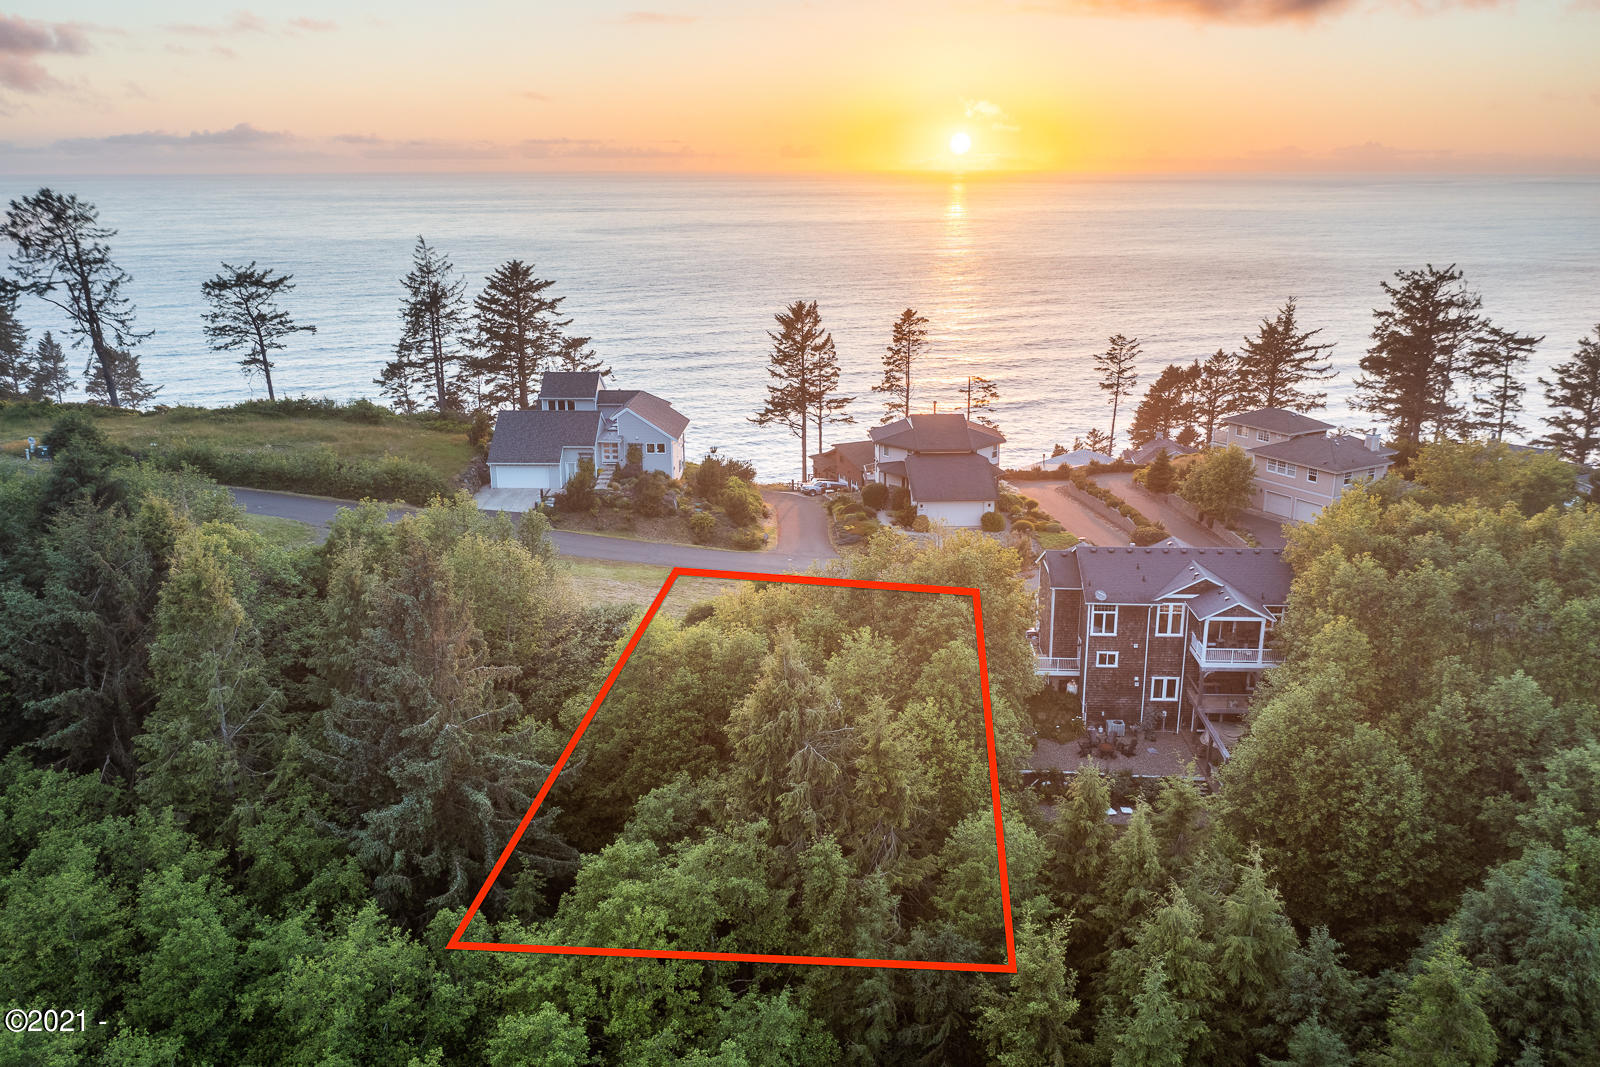 TL 3200 S Beach Rd, Neskowin, OR 97149 - Lot at Sunset